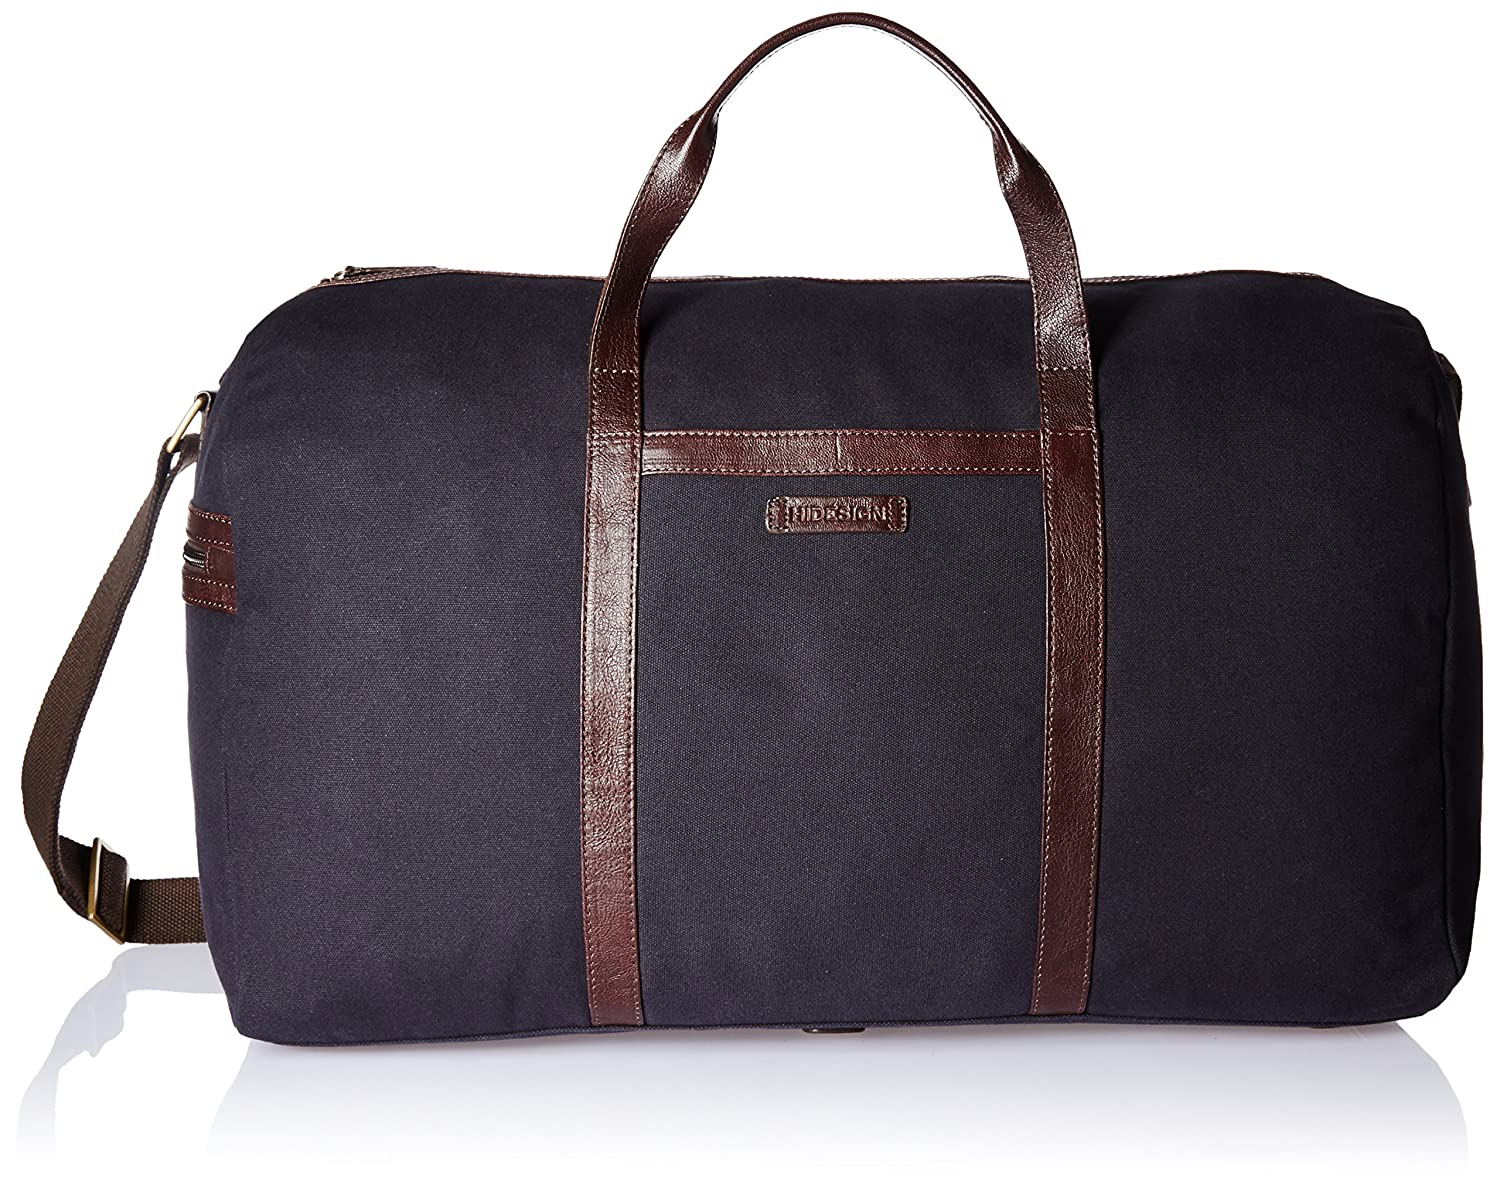 096ff0567e Hidesign Leather-Canvas 55 cms Navy Blue and Brown Travel Duffle (BORJIGIN  03)  Amazon.in  Bags